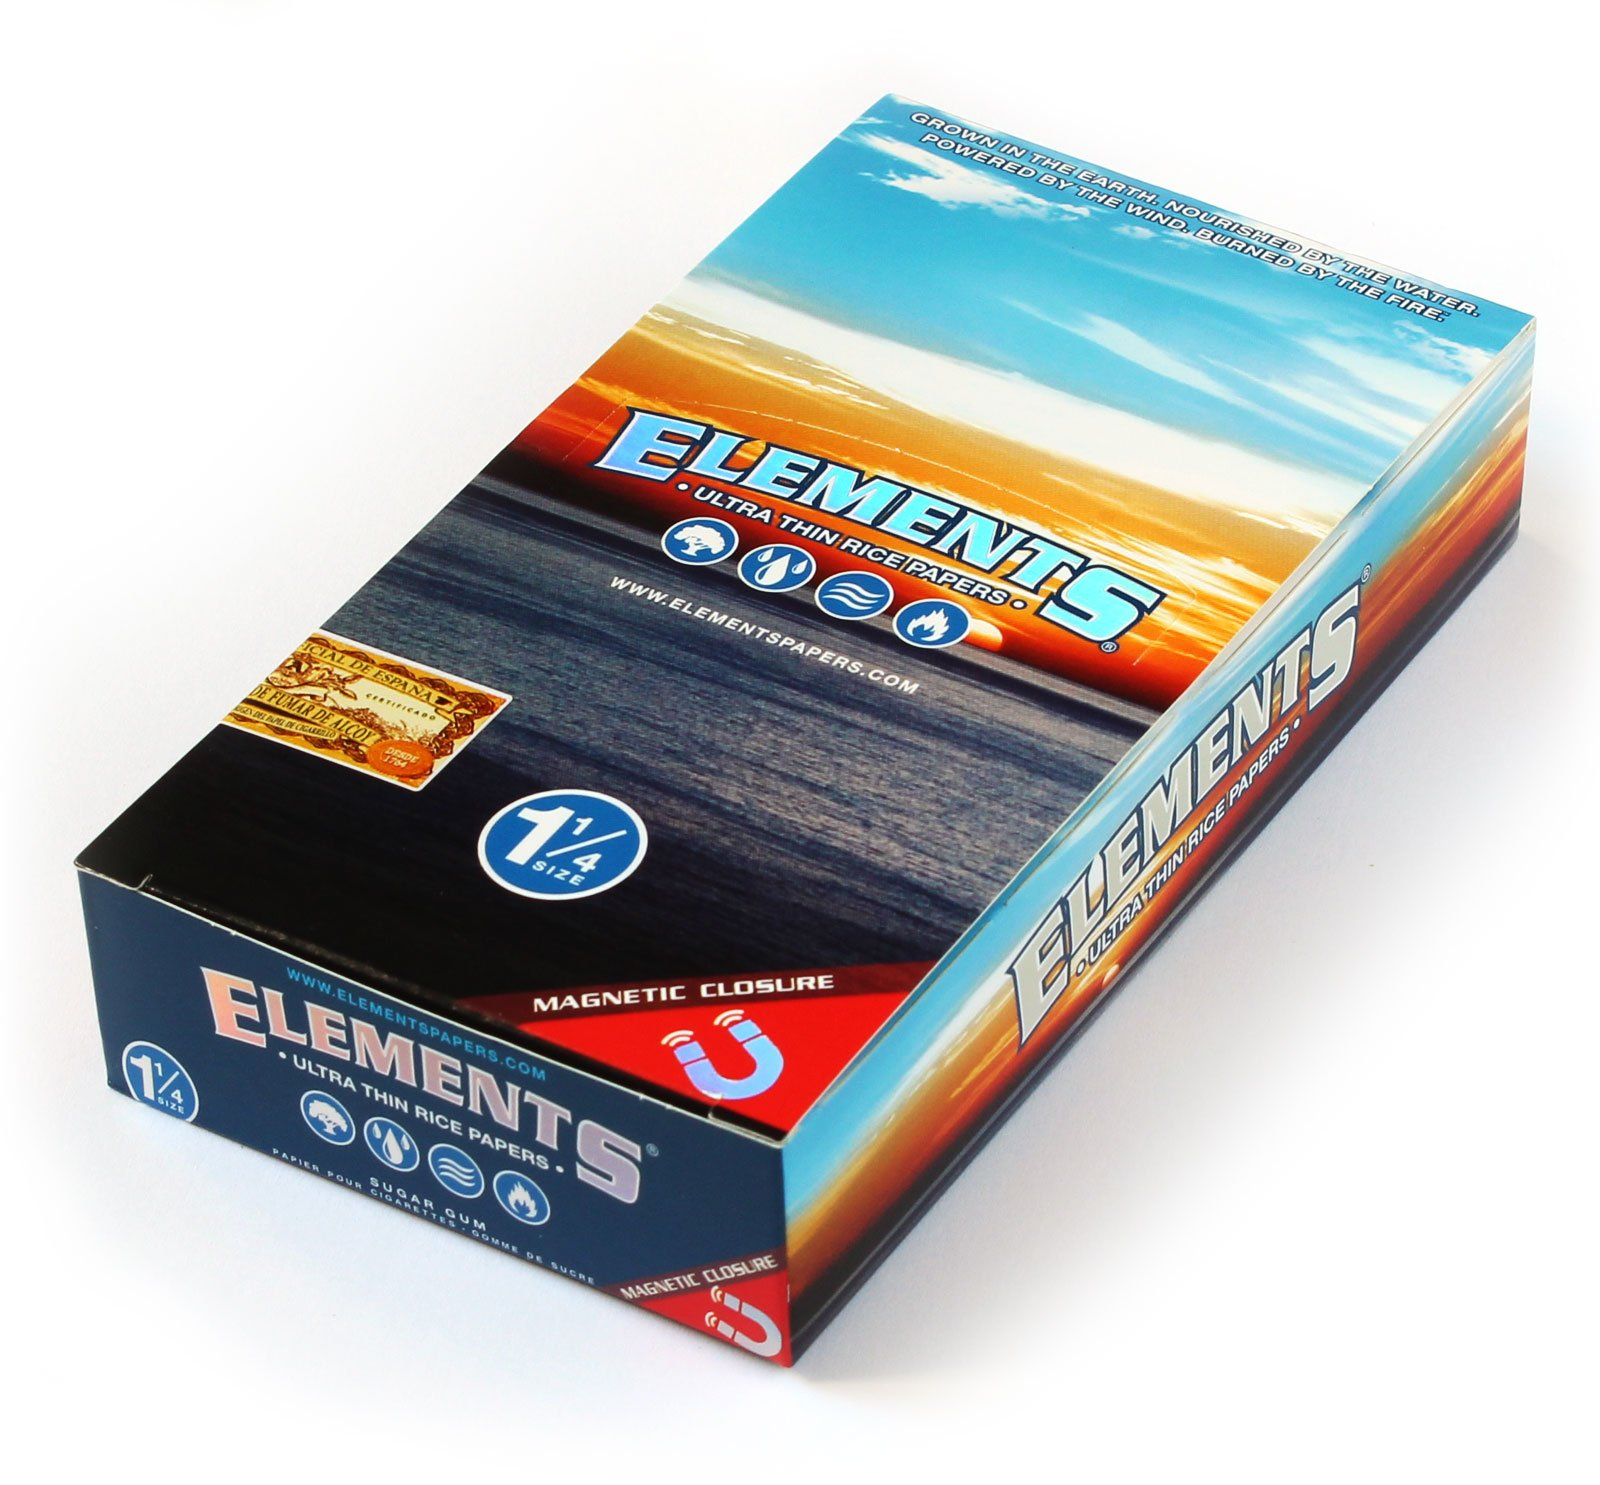 Elements 1.25 1 1/4 Size Ultra Thin Rice Rolling Paper With Magnetic Closure Full Box Of 25 by ELEMENTS